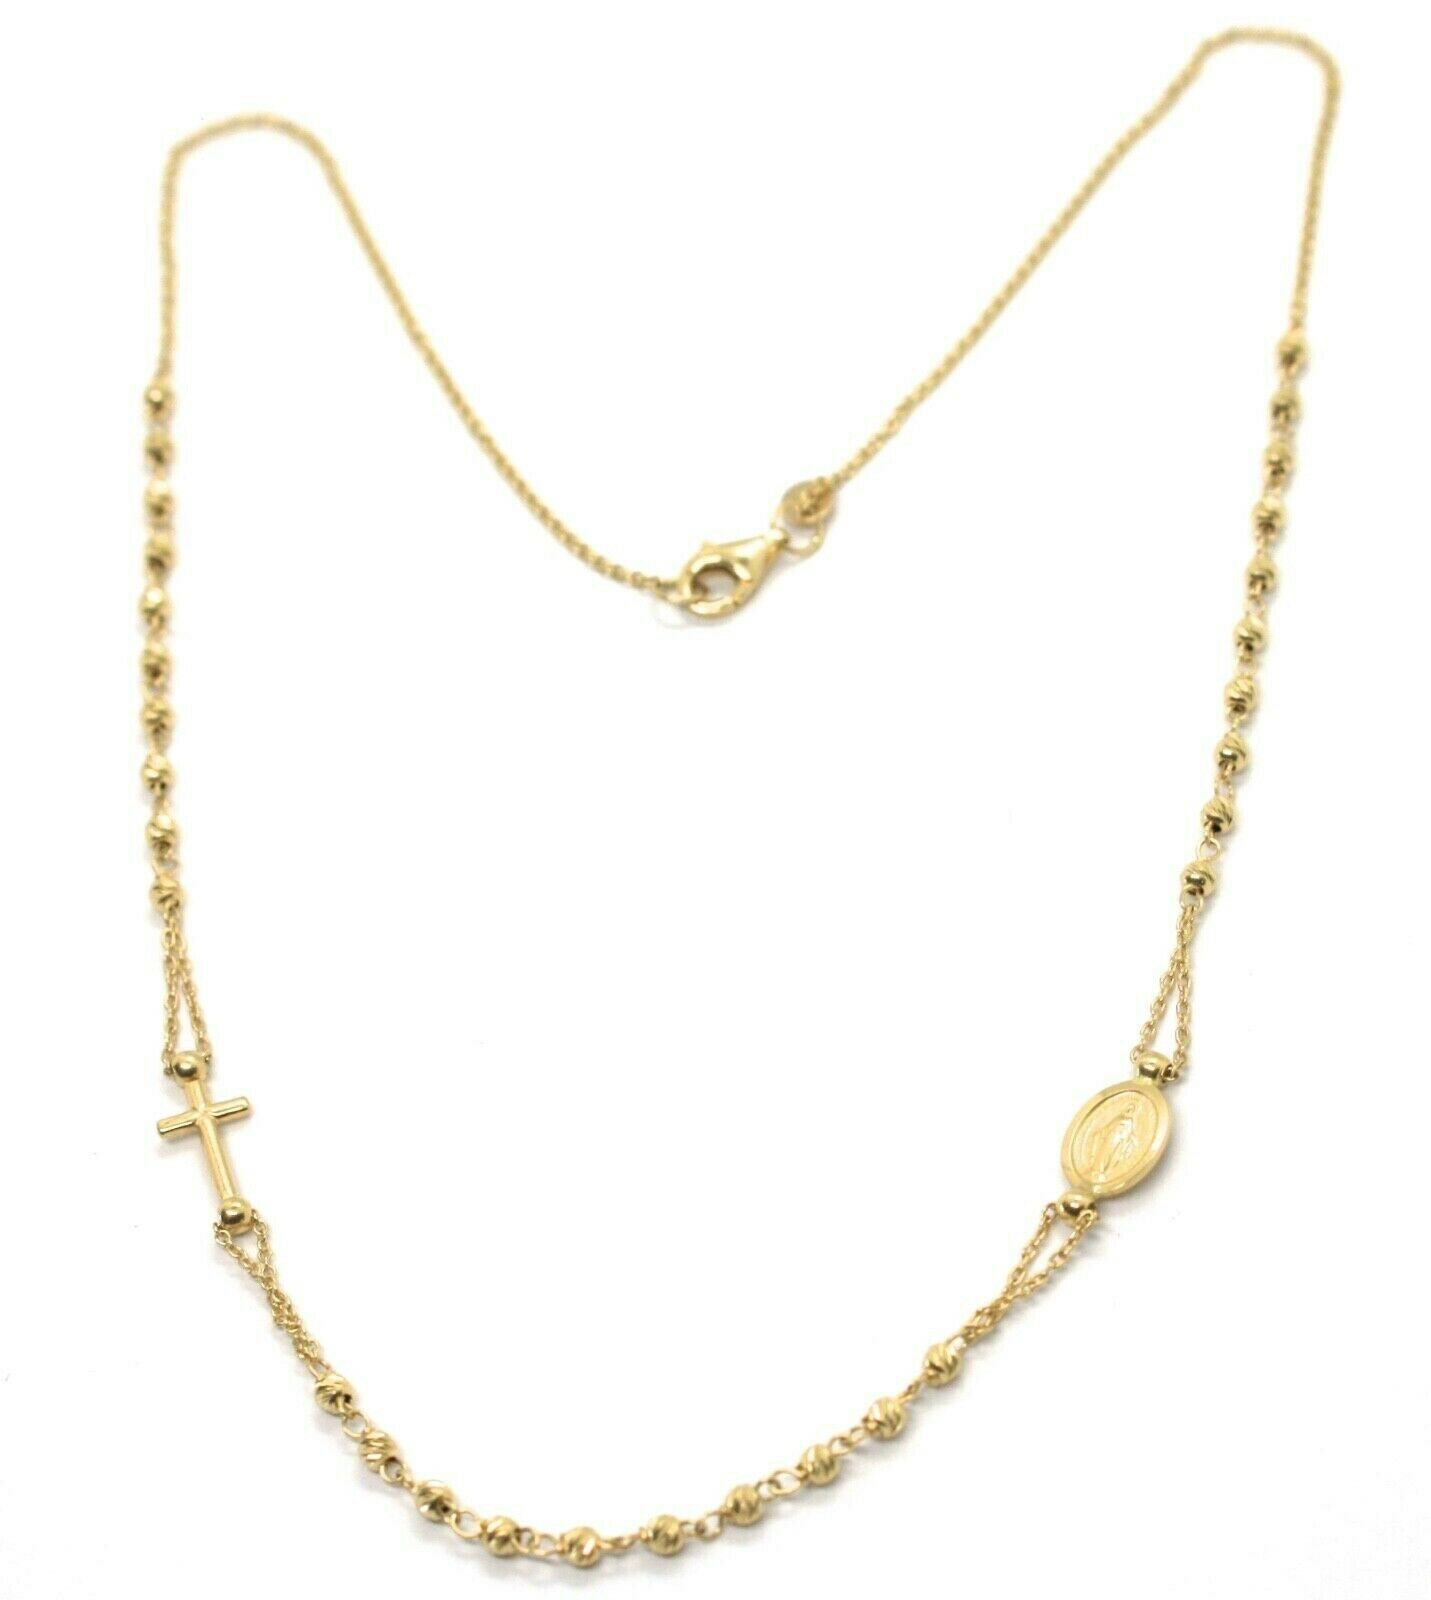 Necklace Rosary Yellow Gold 750 18K, Medal Miraculous cross, Spheres Fairisle